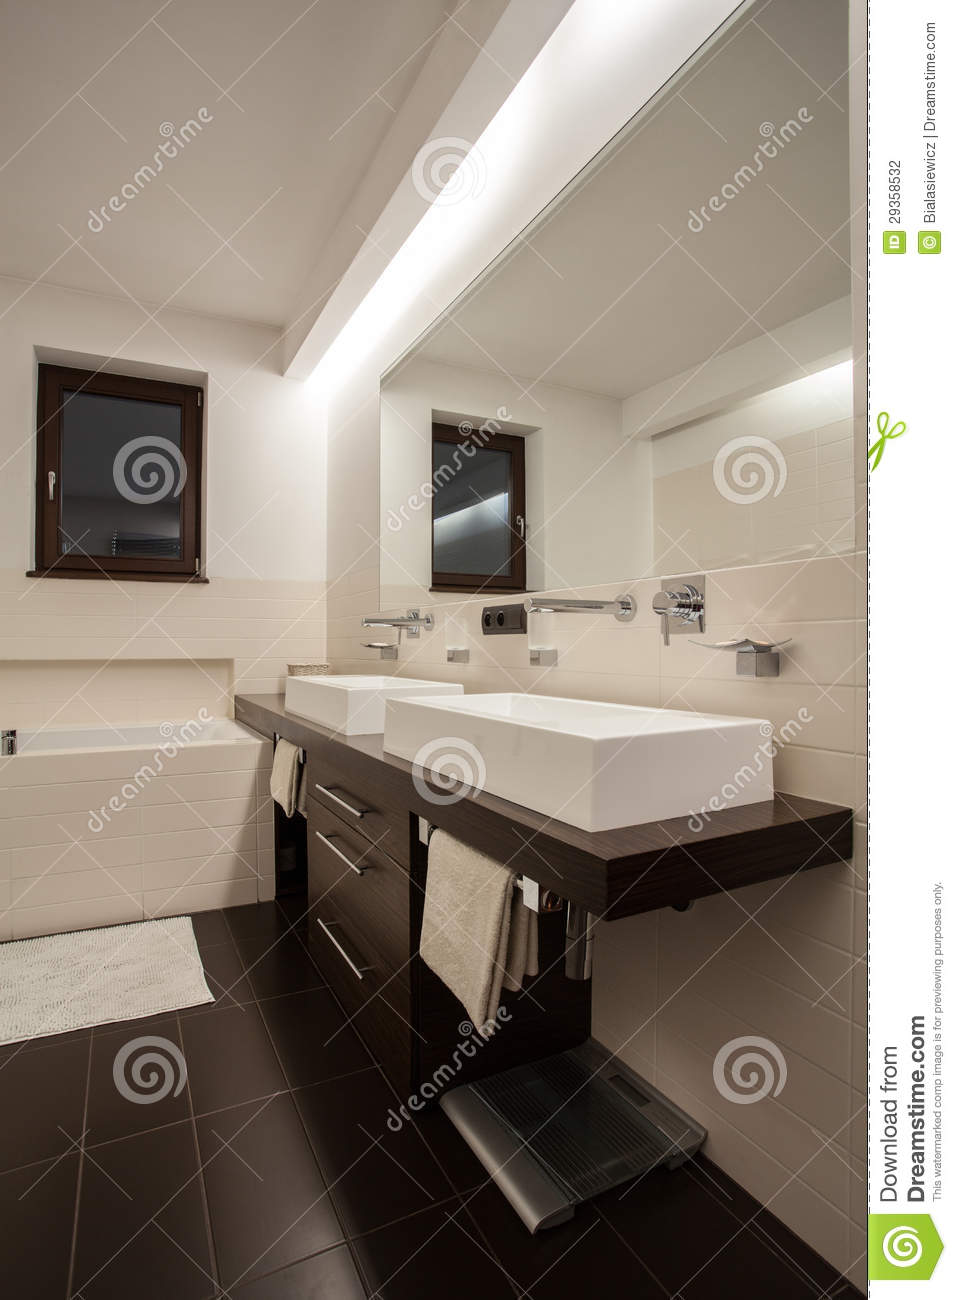 Casa del travertino bagno spazioso fotografia stock - Bagno travertino ...